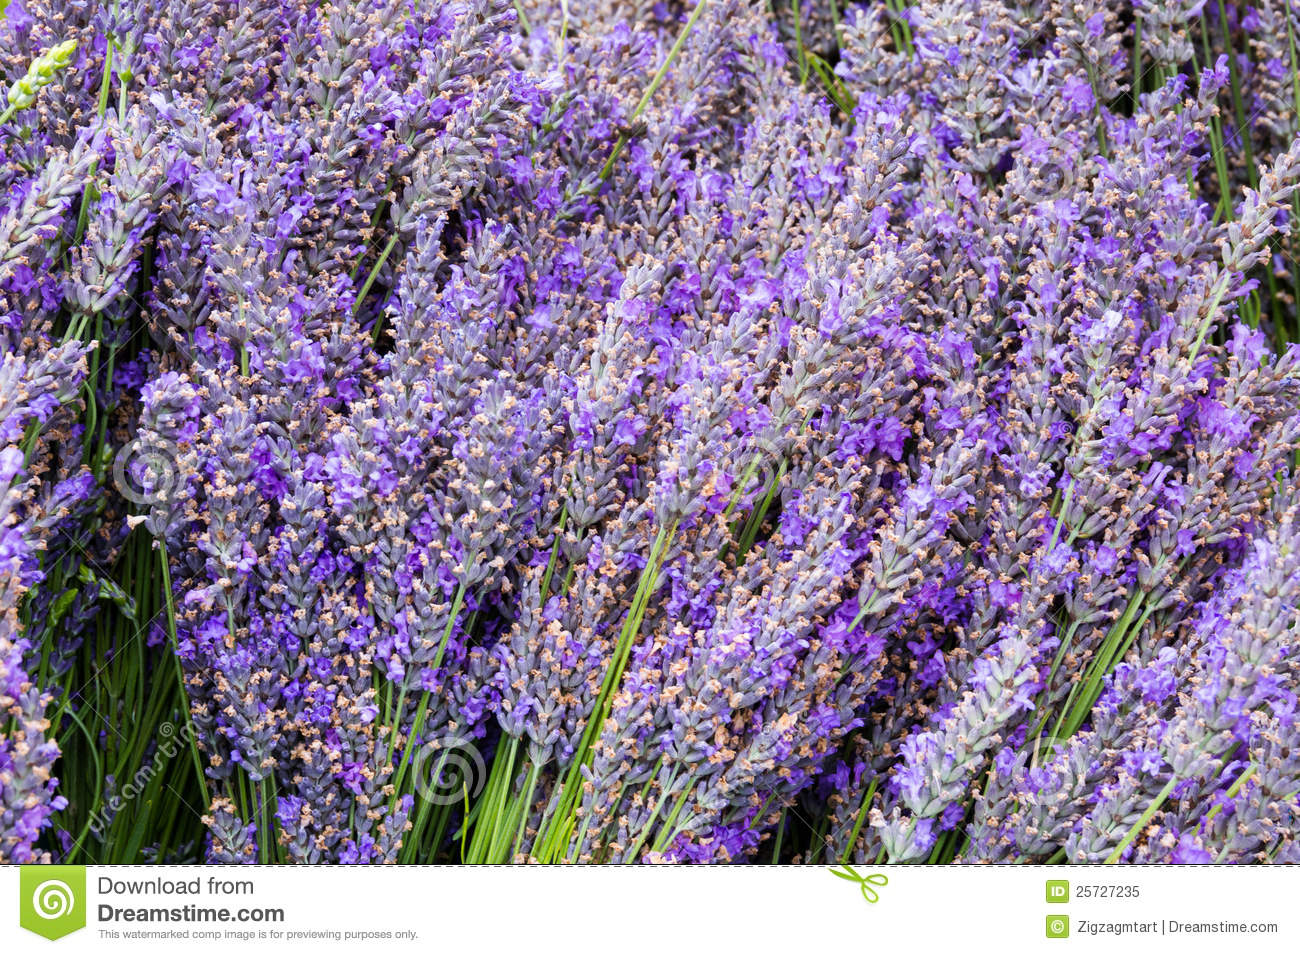 Lavendar flowers and stems in bunches